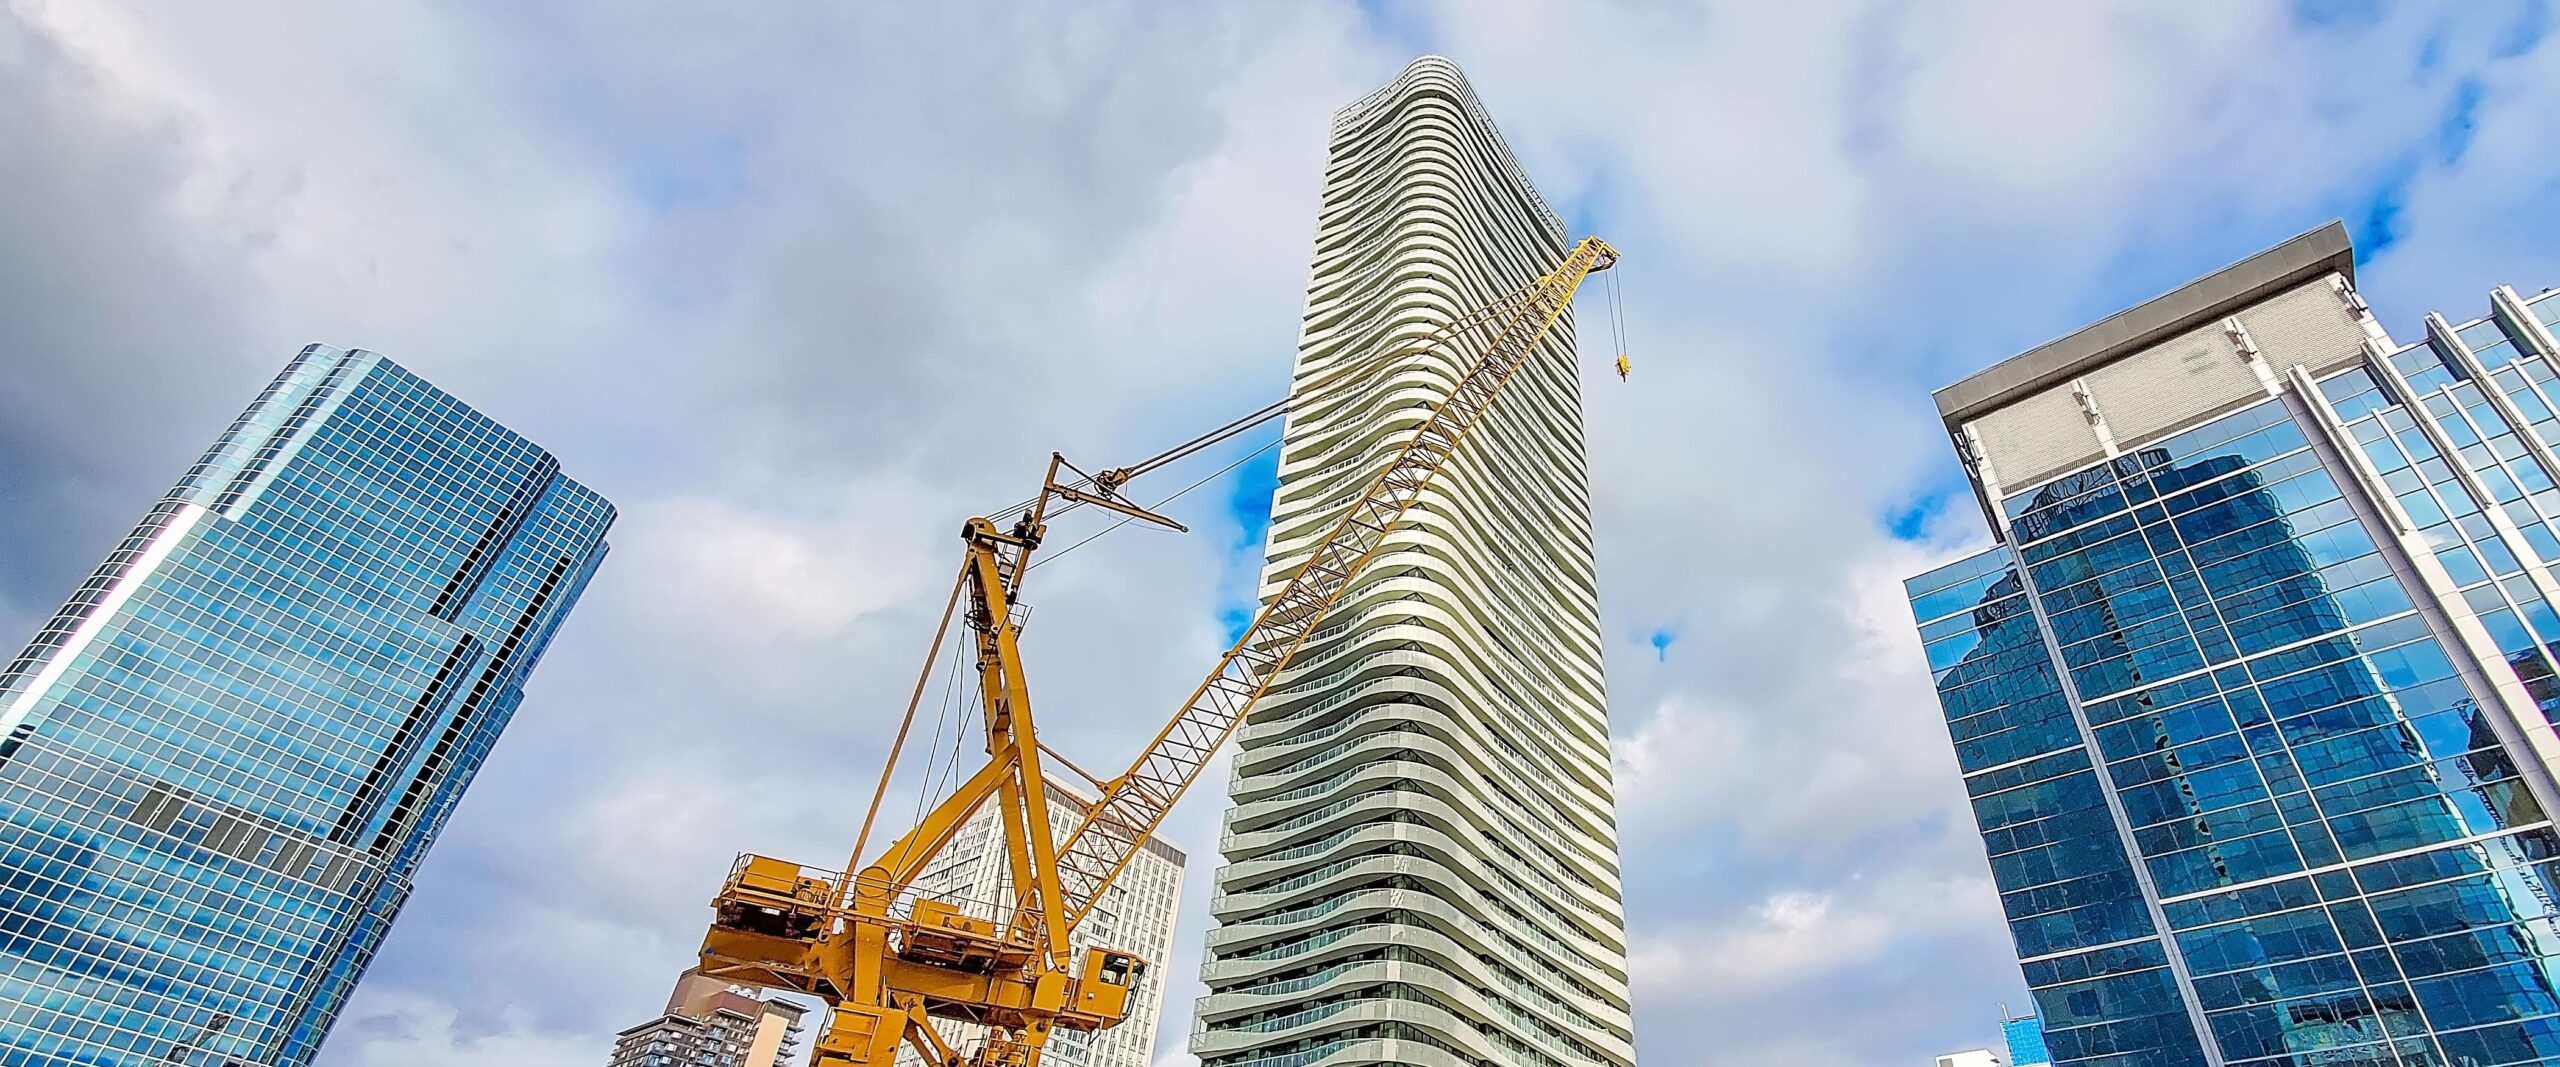 Construction of the luxury condominium in the heart of а city downtown at a premium location near financial center and main tourist attractions